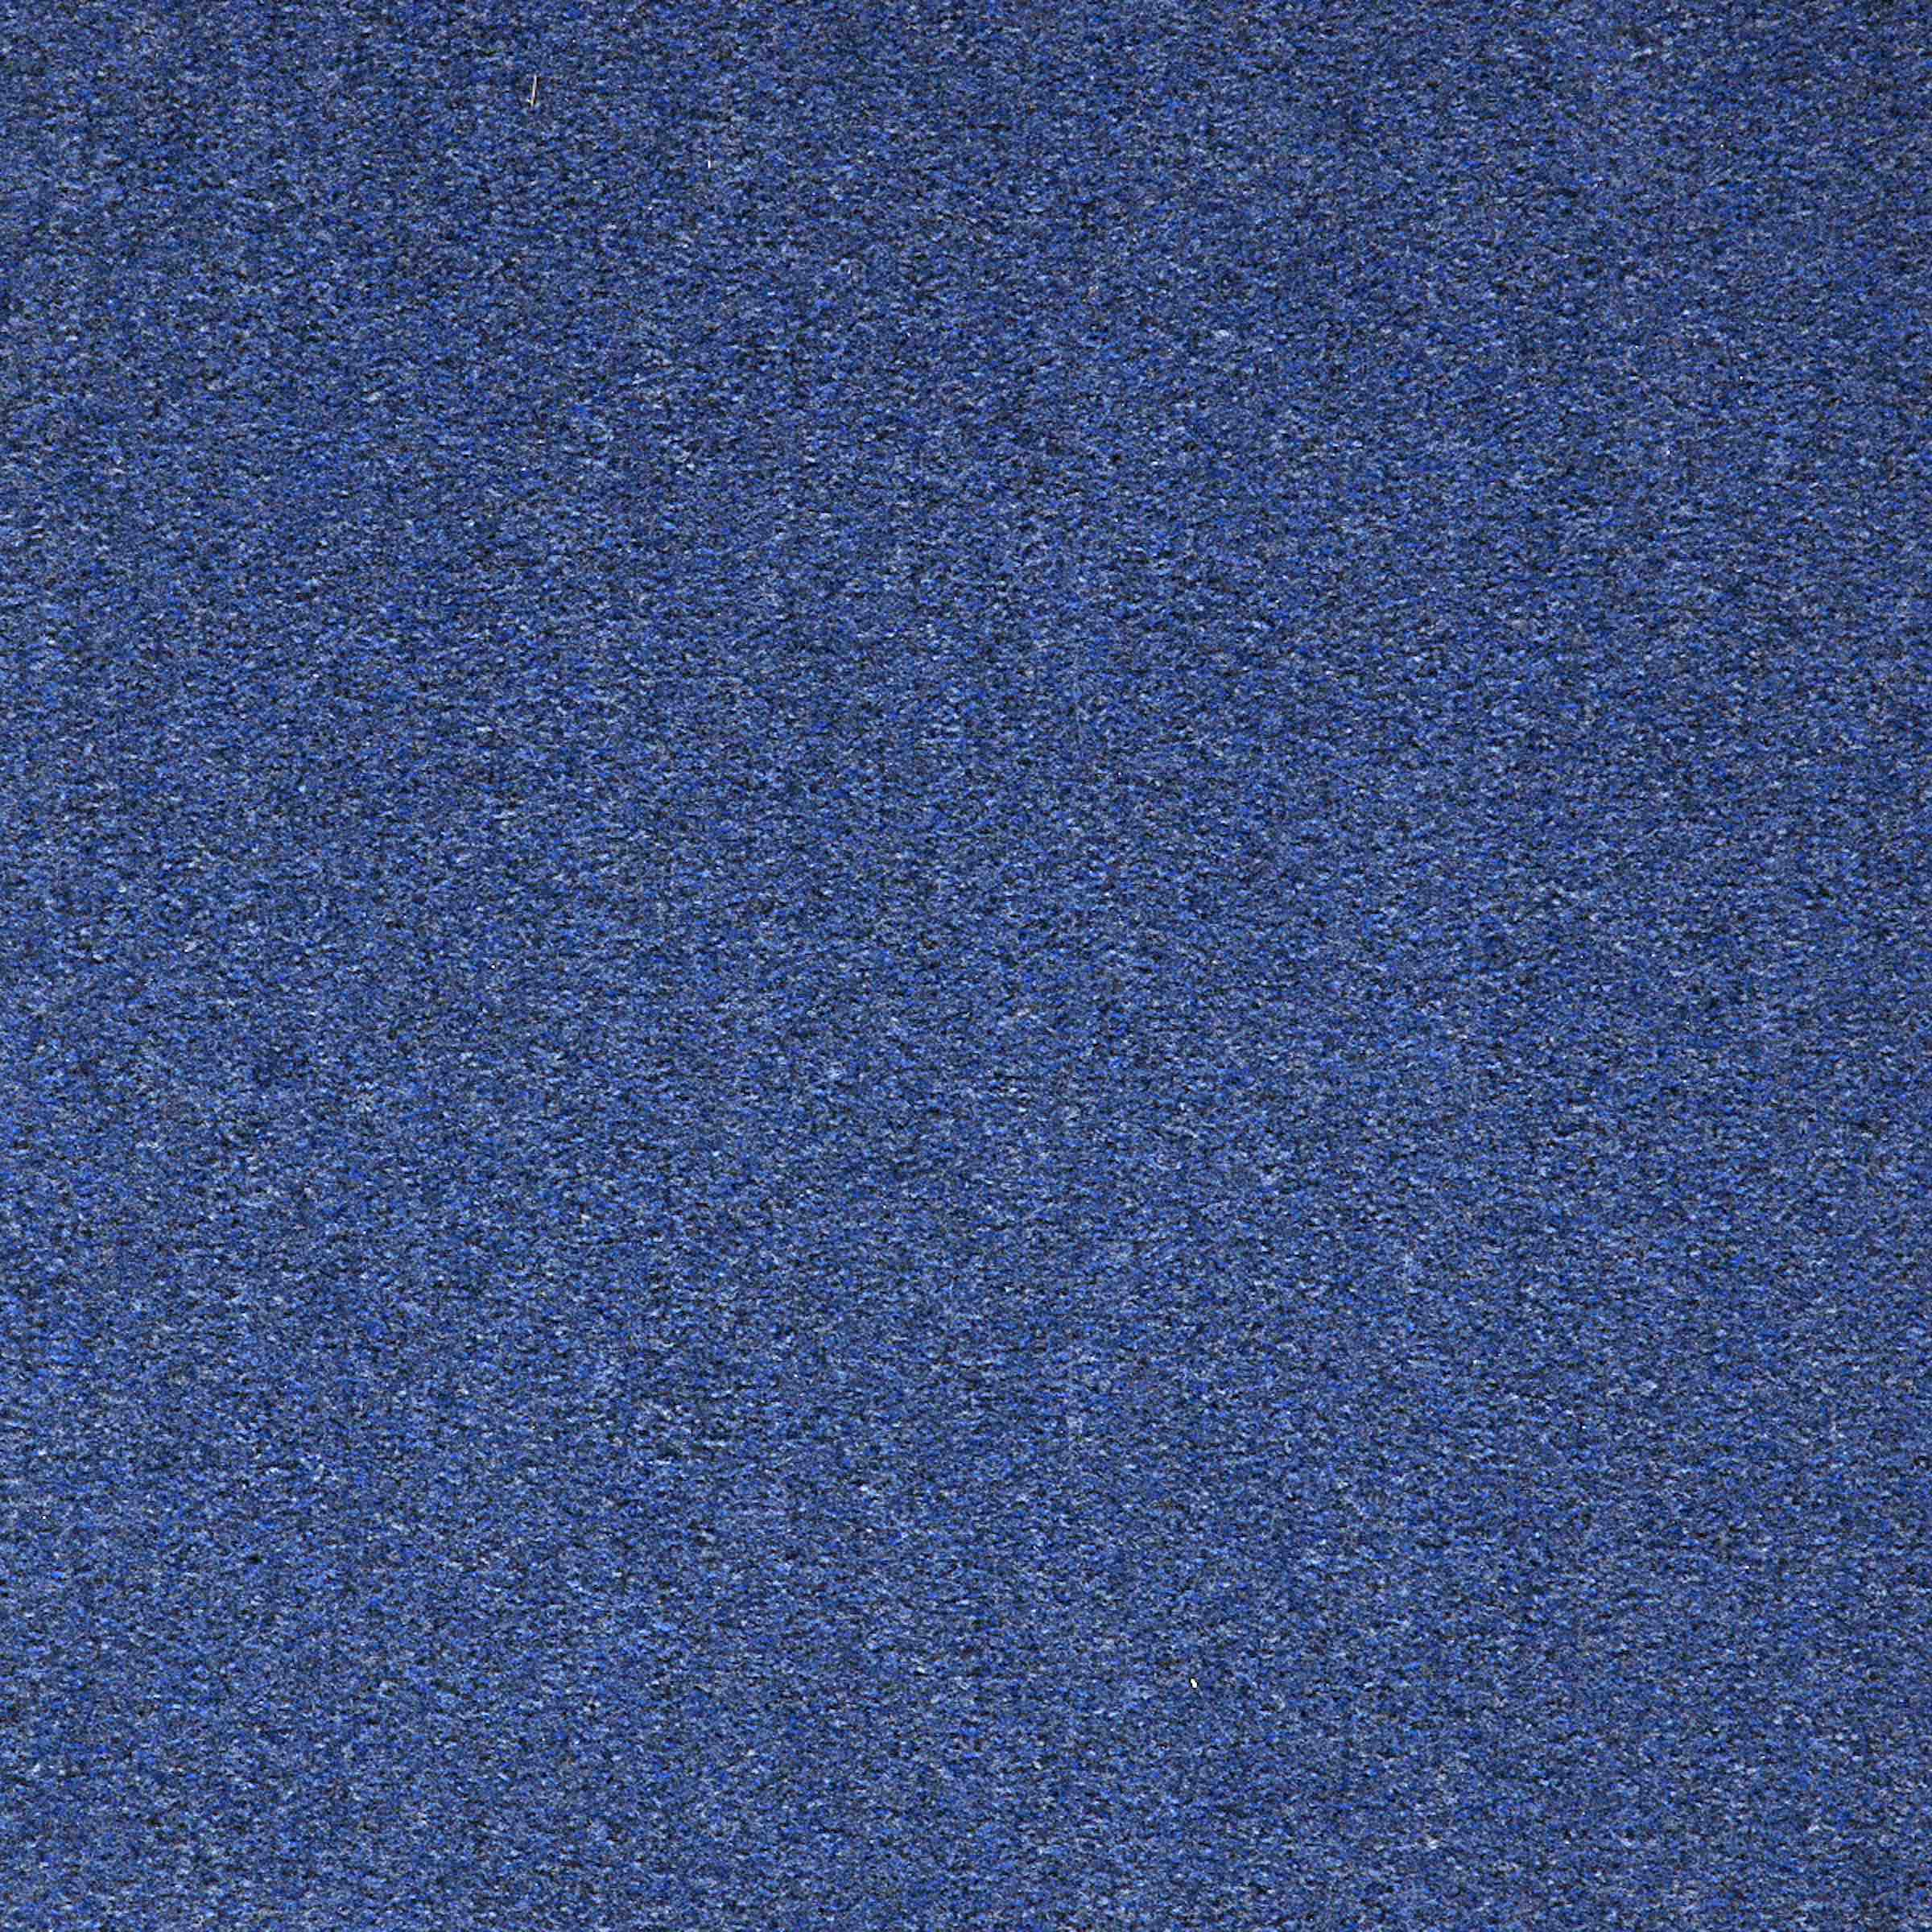 Workspace Cut Pile | Coastal Blue, 6159C | Paragon Carpet Tiles | Commercial Carpet Tiles